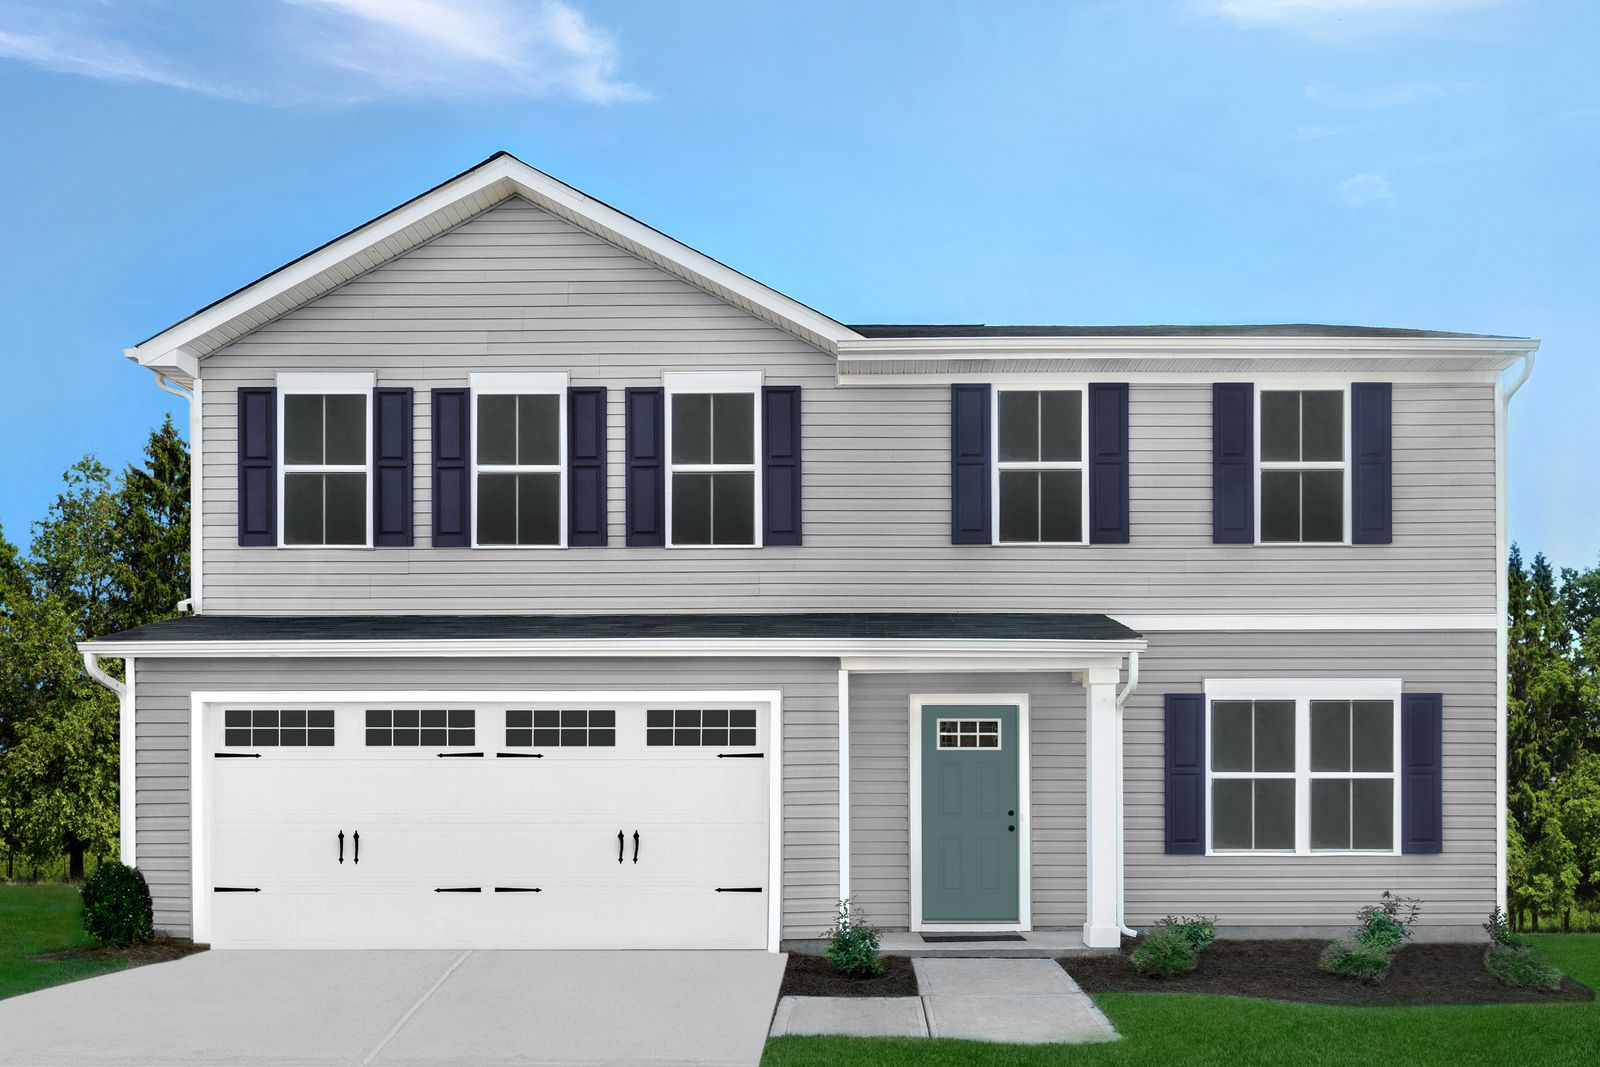 OWN FOR THE BEST VALUE ON THE EAST SIDE OF CHARLOTTE:Join the VIP Listto own an affordable new home within the I-485 loop on the east side of Charlotte from the Mid $300s.